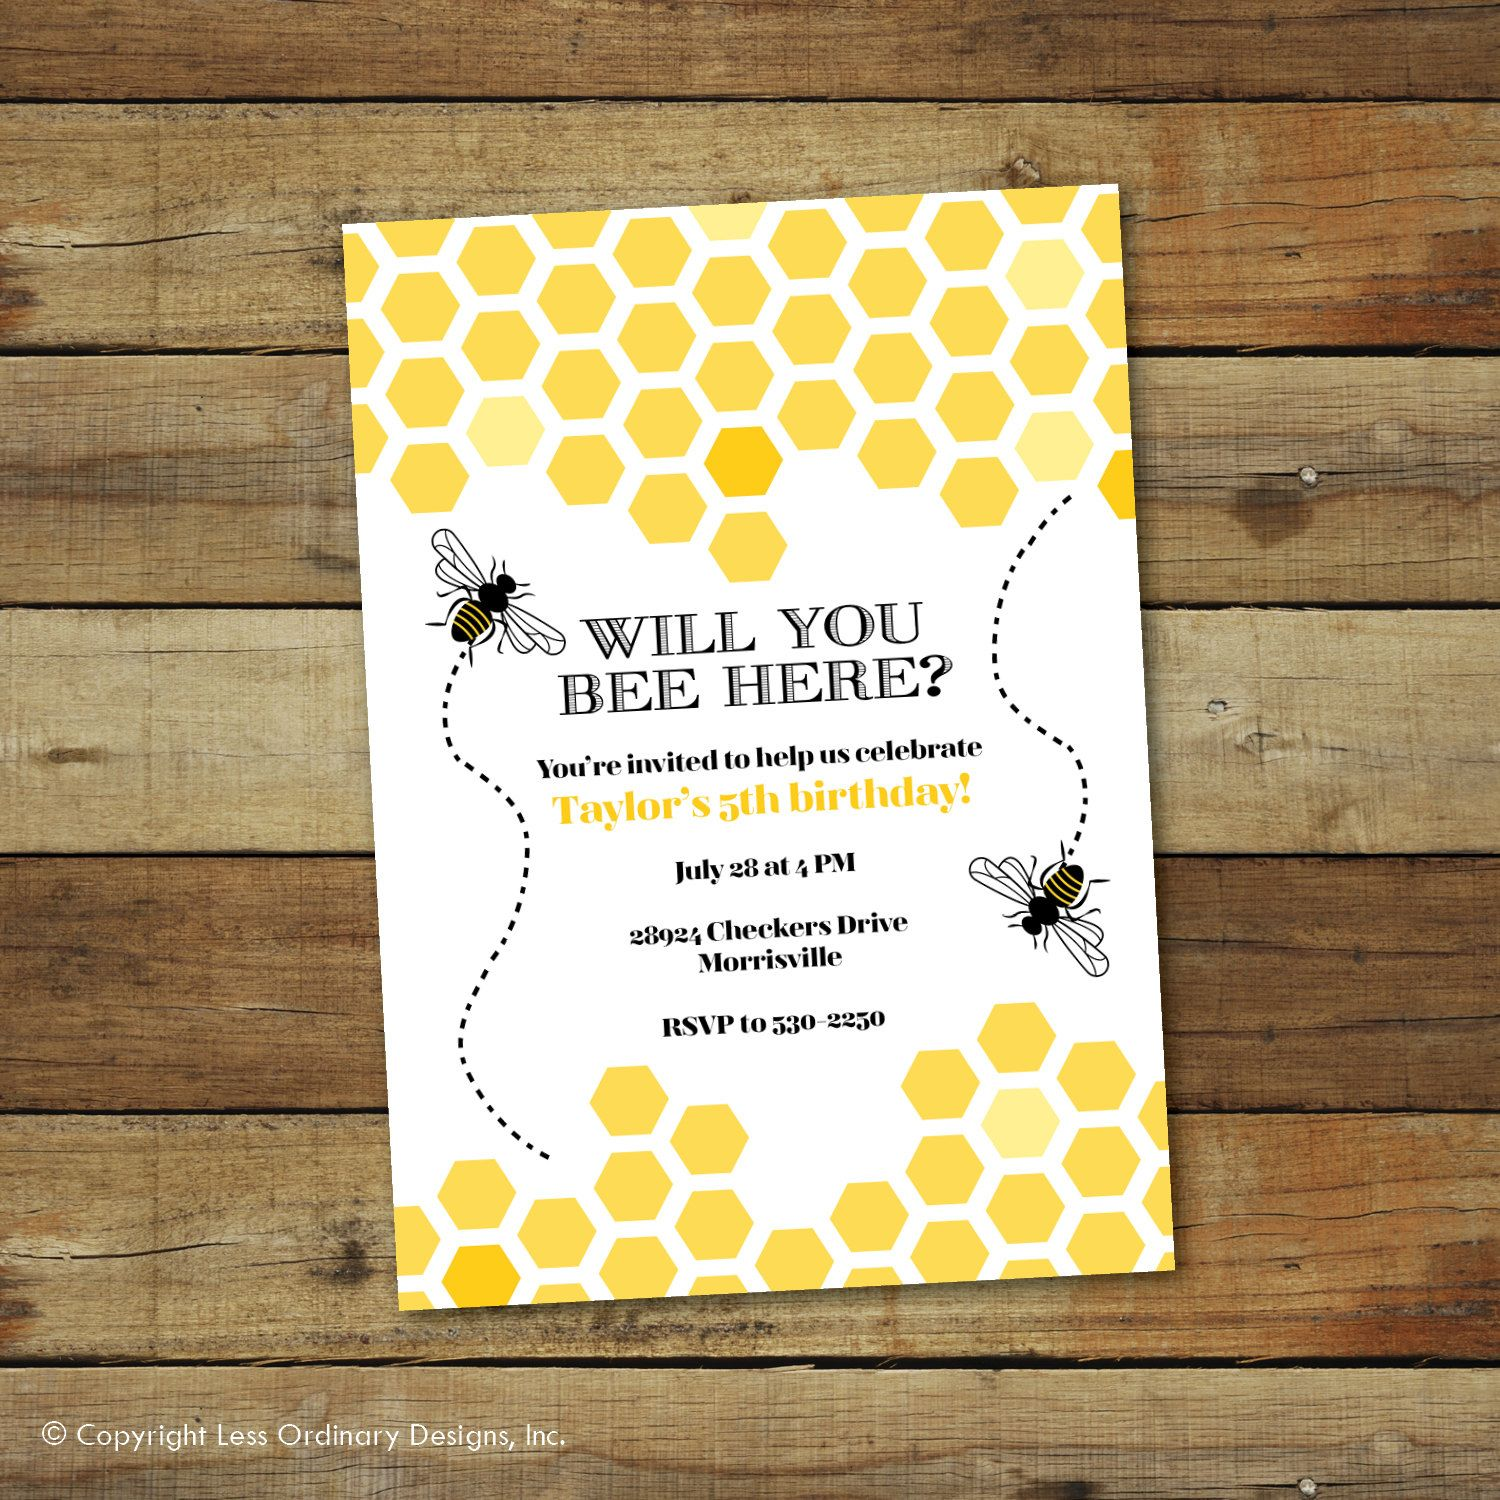 Bumble Bee Birthday Party Invitation Hive Theme Yellow And Black Printable Or Printed